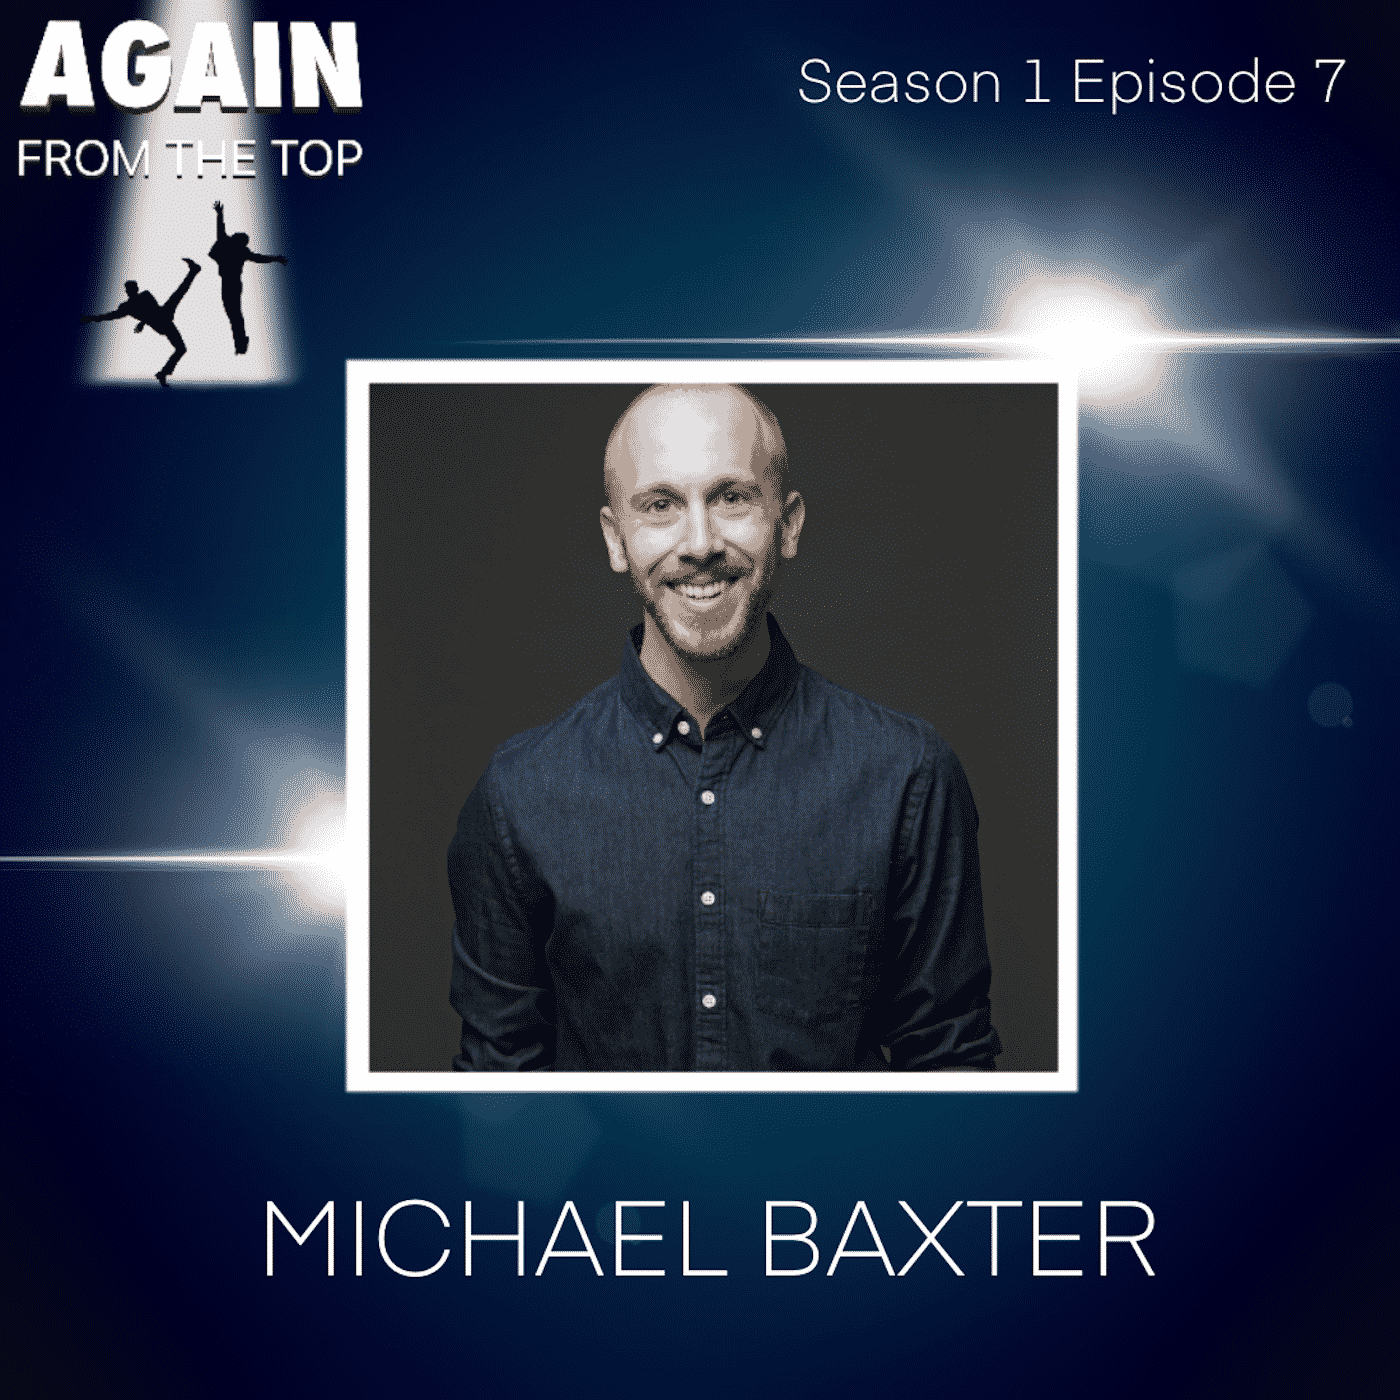 S1/Ep7: MICHAEL BAXTER IS ALWAYS ON HIS LEG